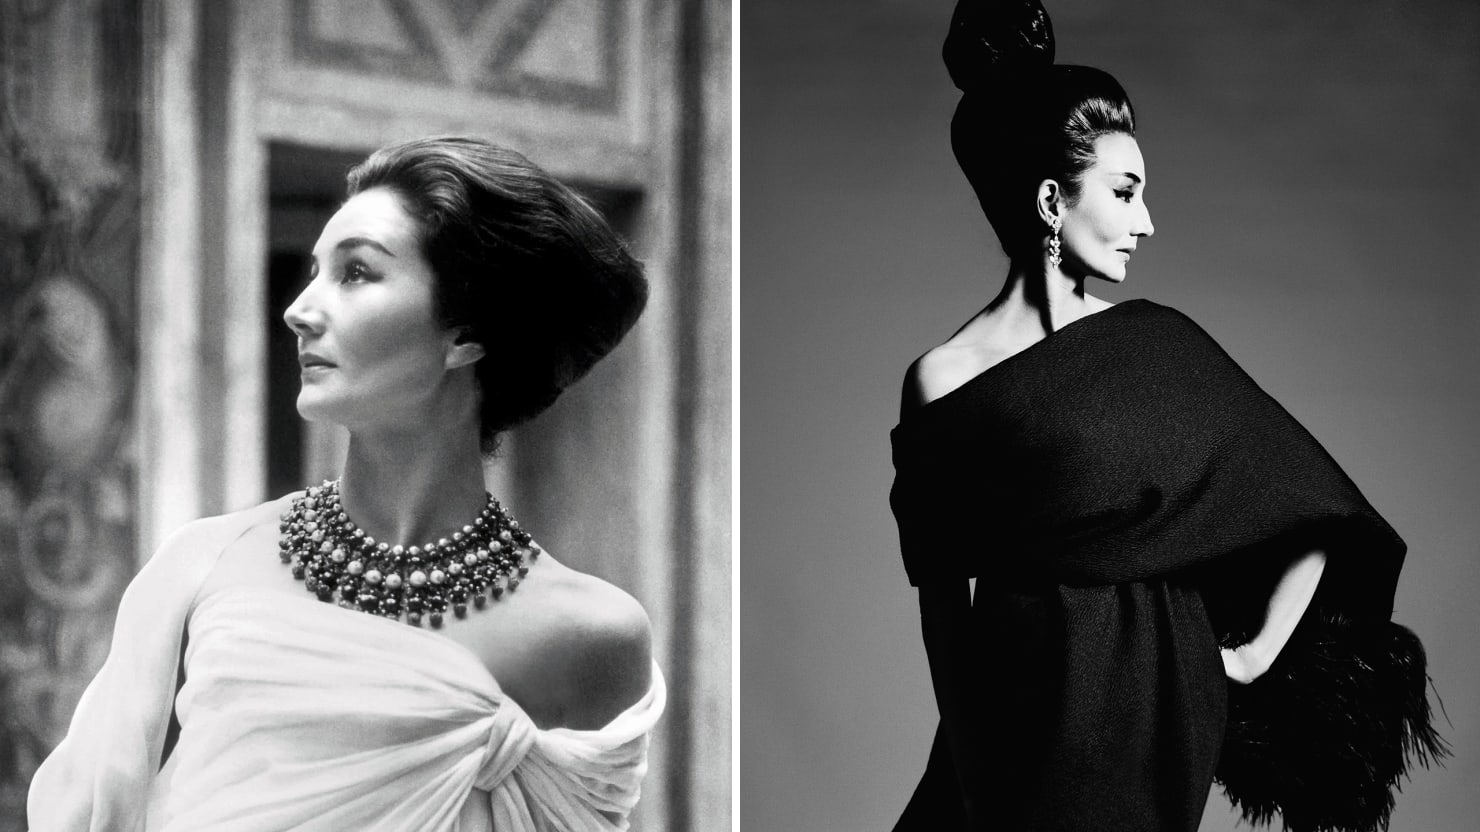 The Outrageous Secrets of Fashion Queen Jacqueline de Ribes